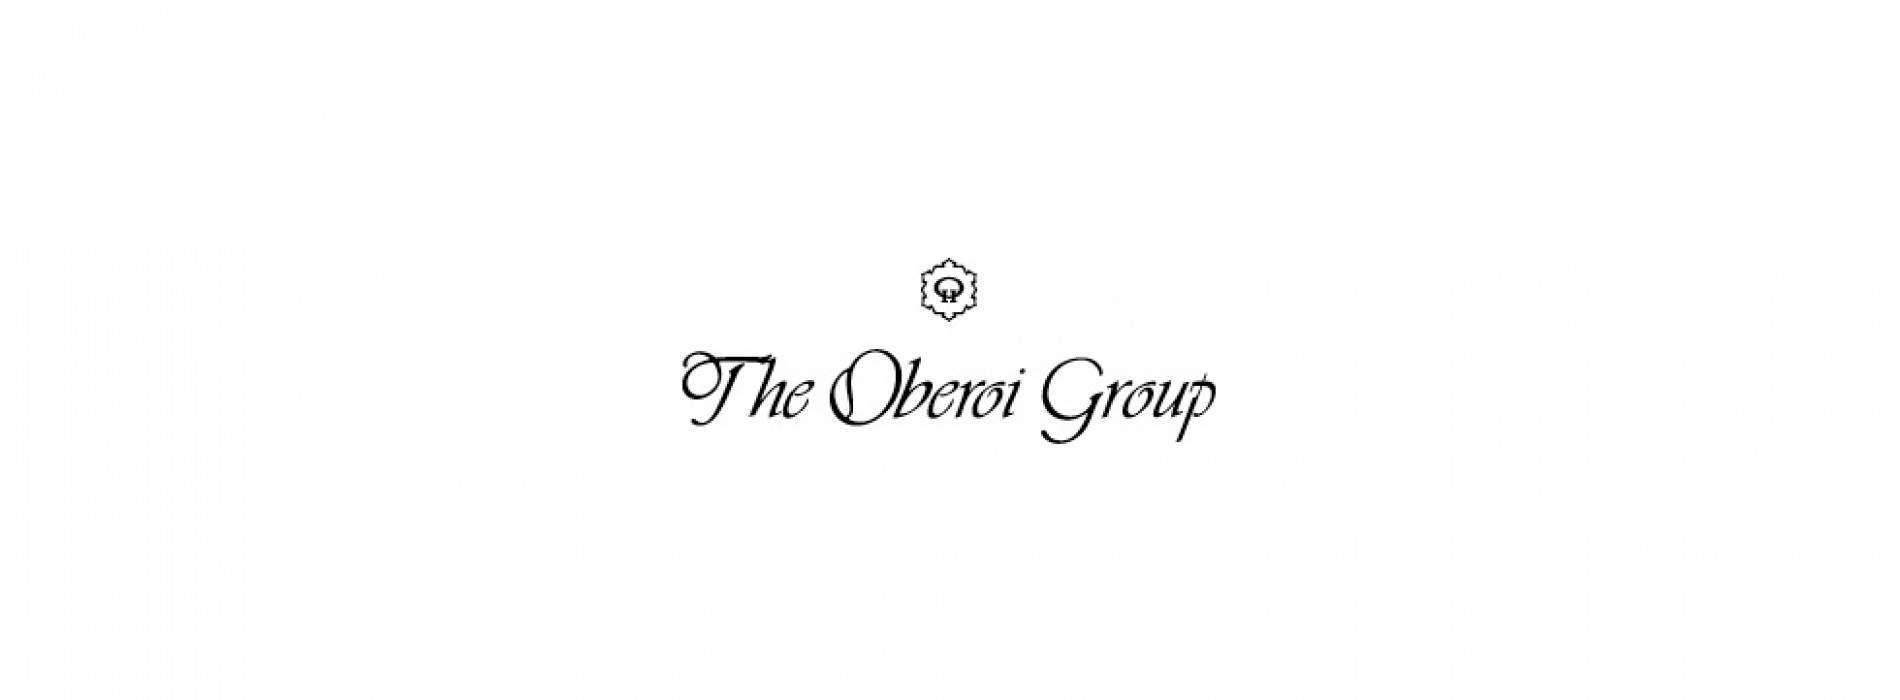 Special offers by the Oberoi group for its Mauritius and Dubai property